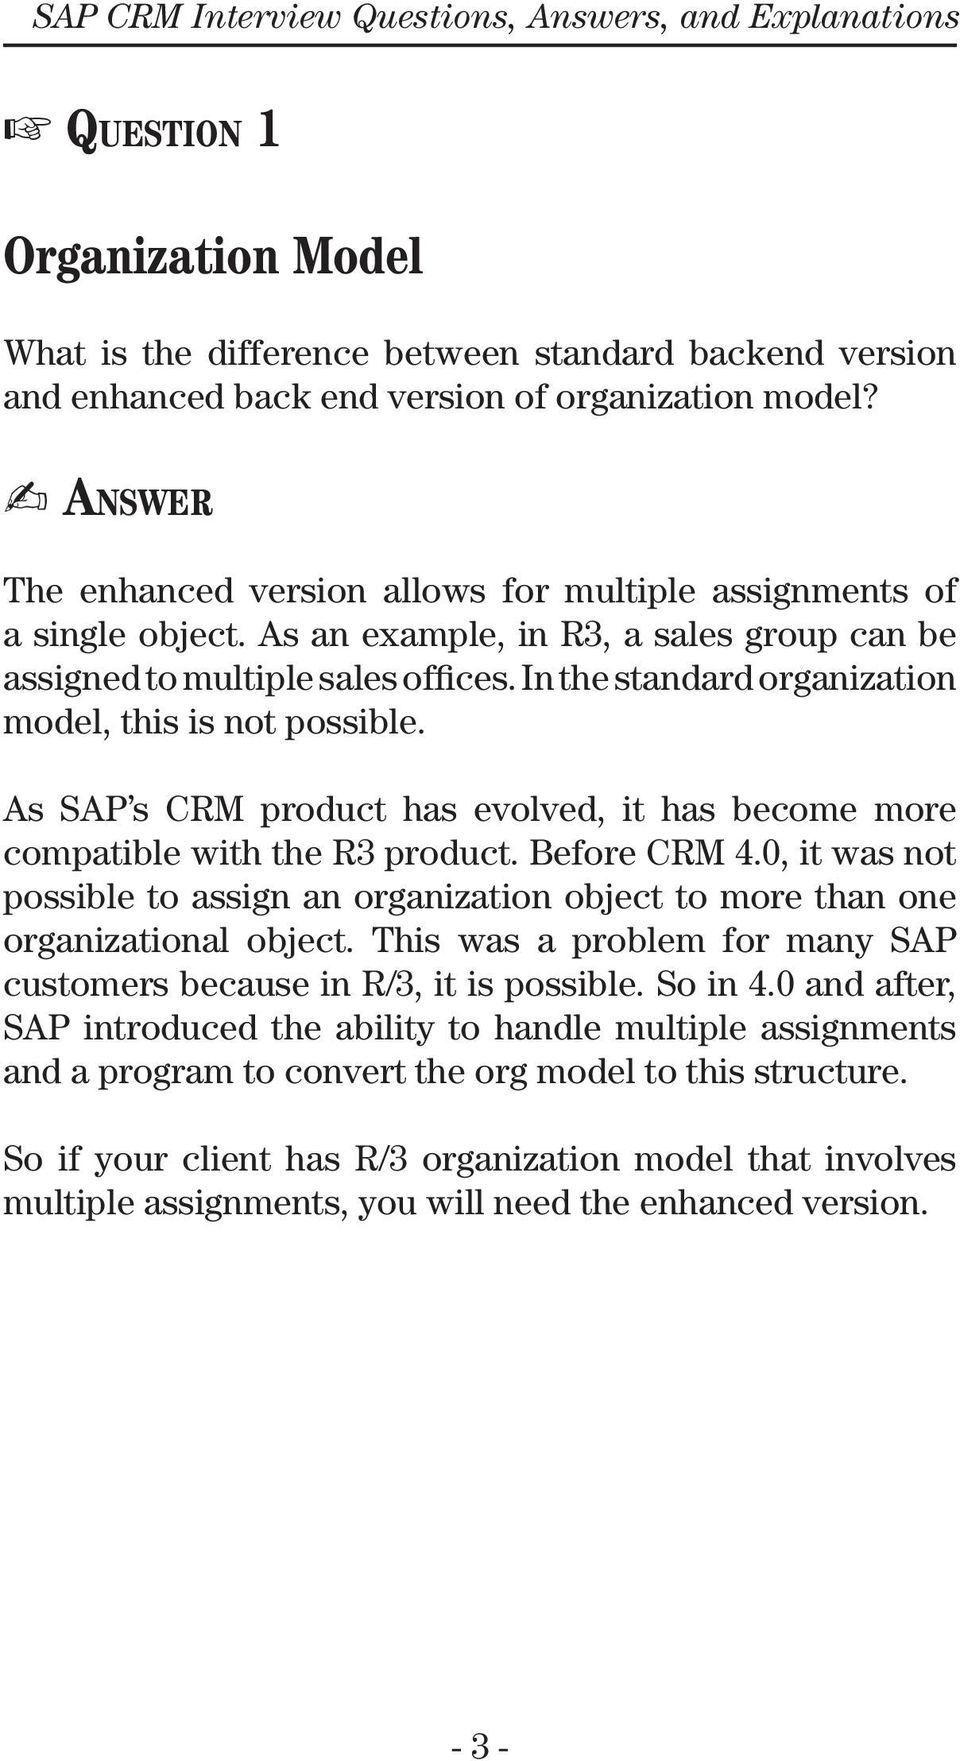 sap crm interview questions answers and explanations pdf in the standard organization model this is not possible as sap s crm product